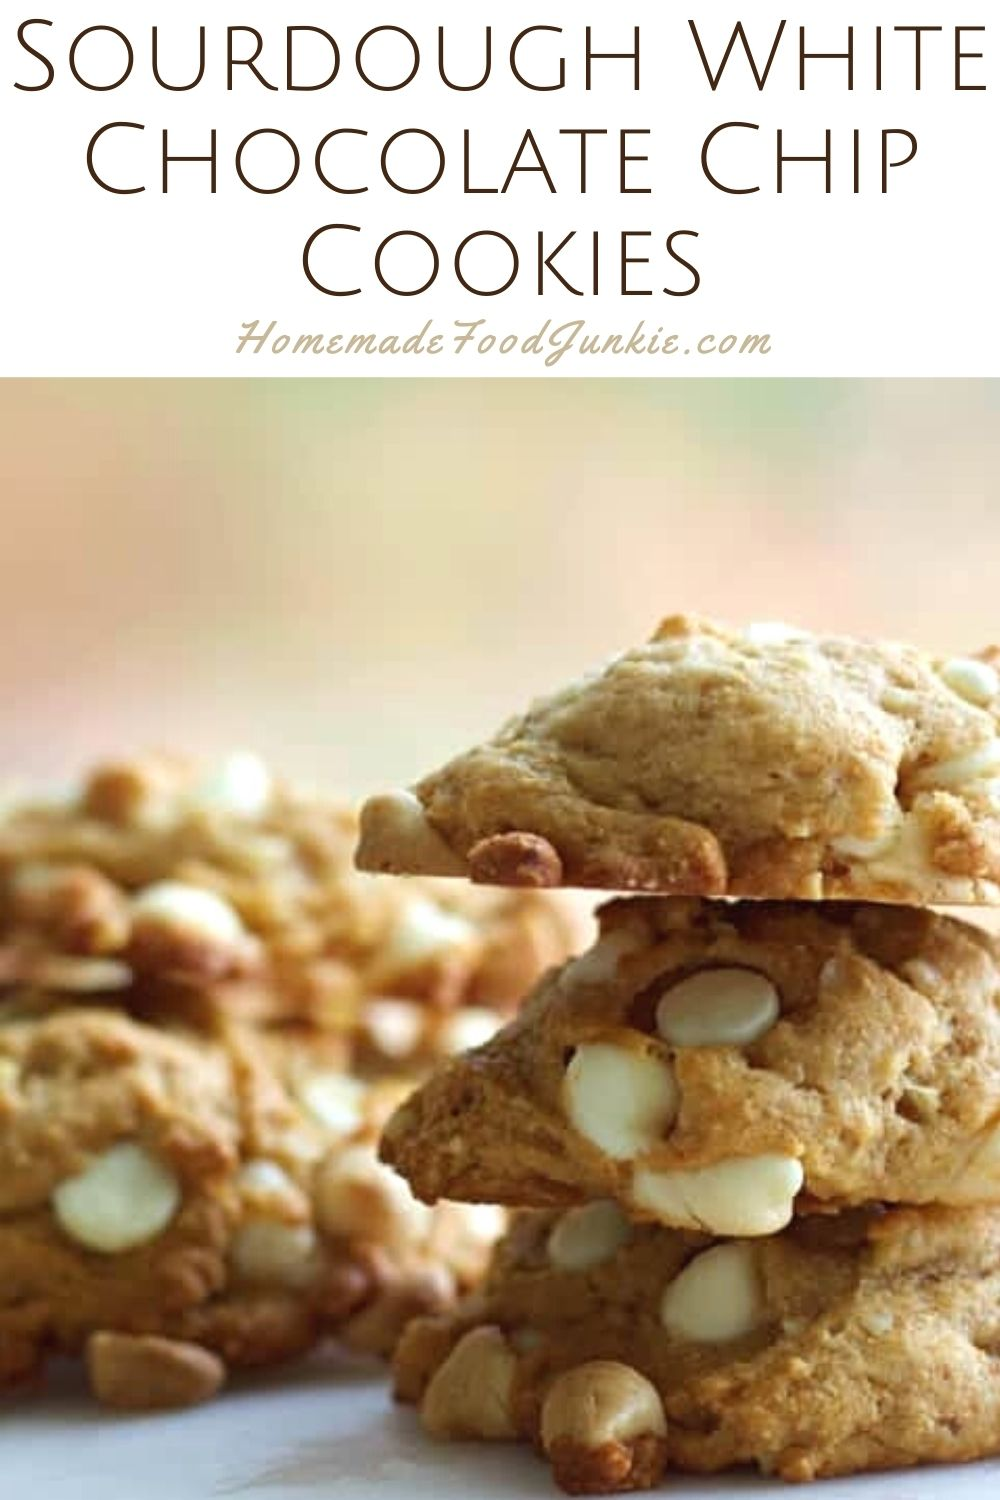 Sourdough white chocolate chip cookies-pin image